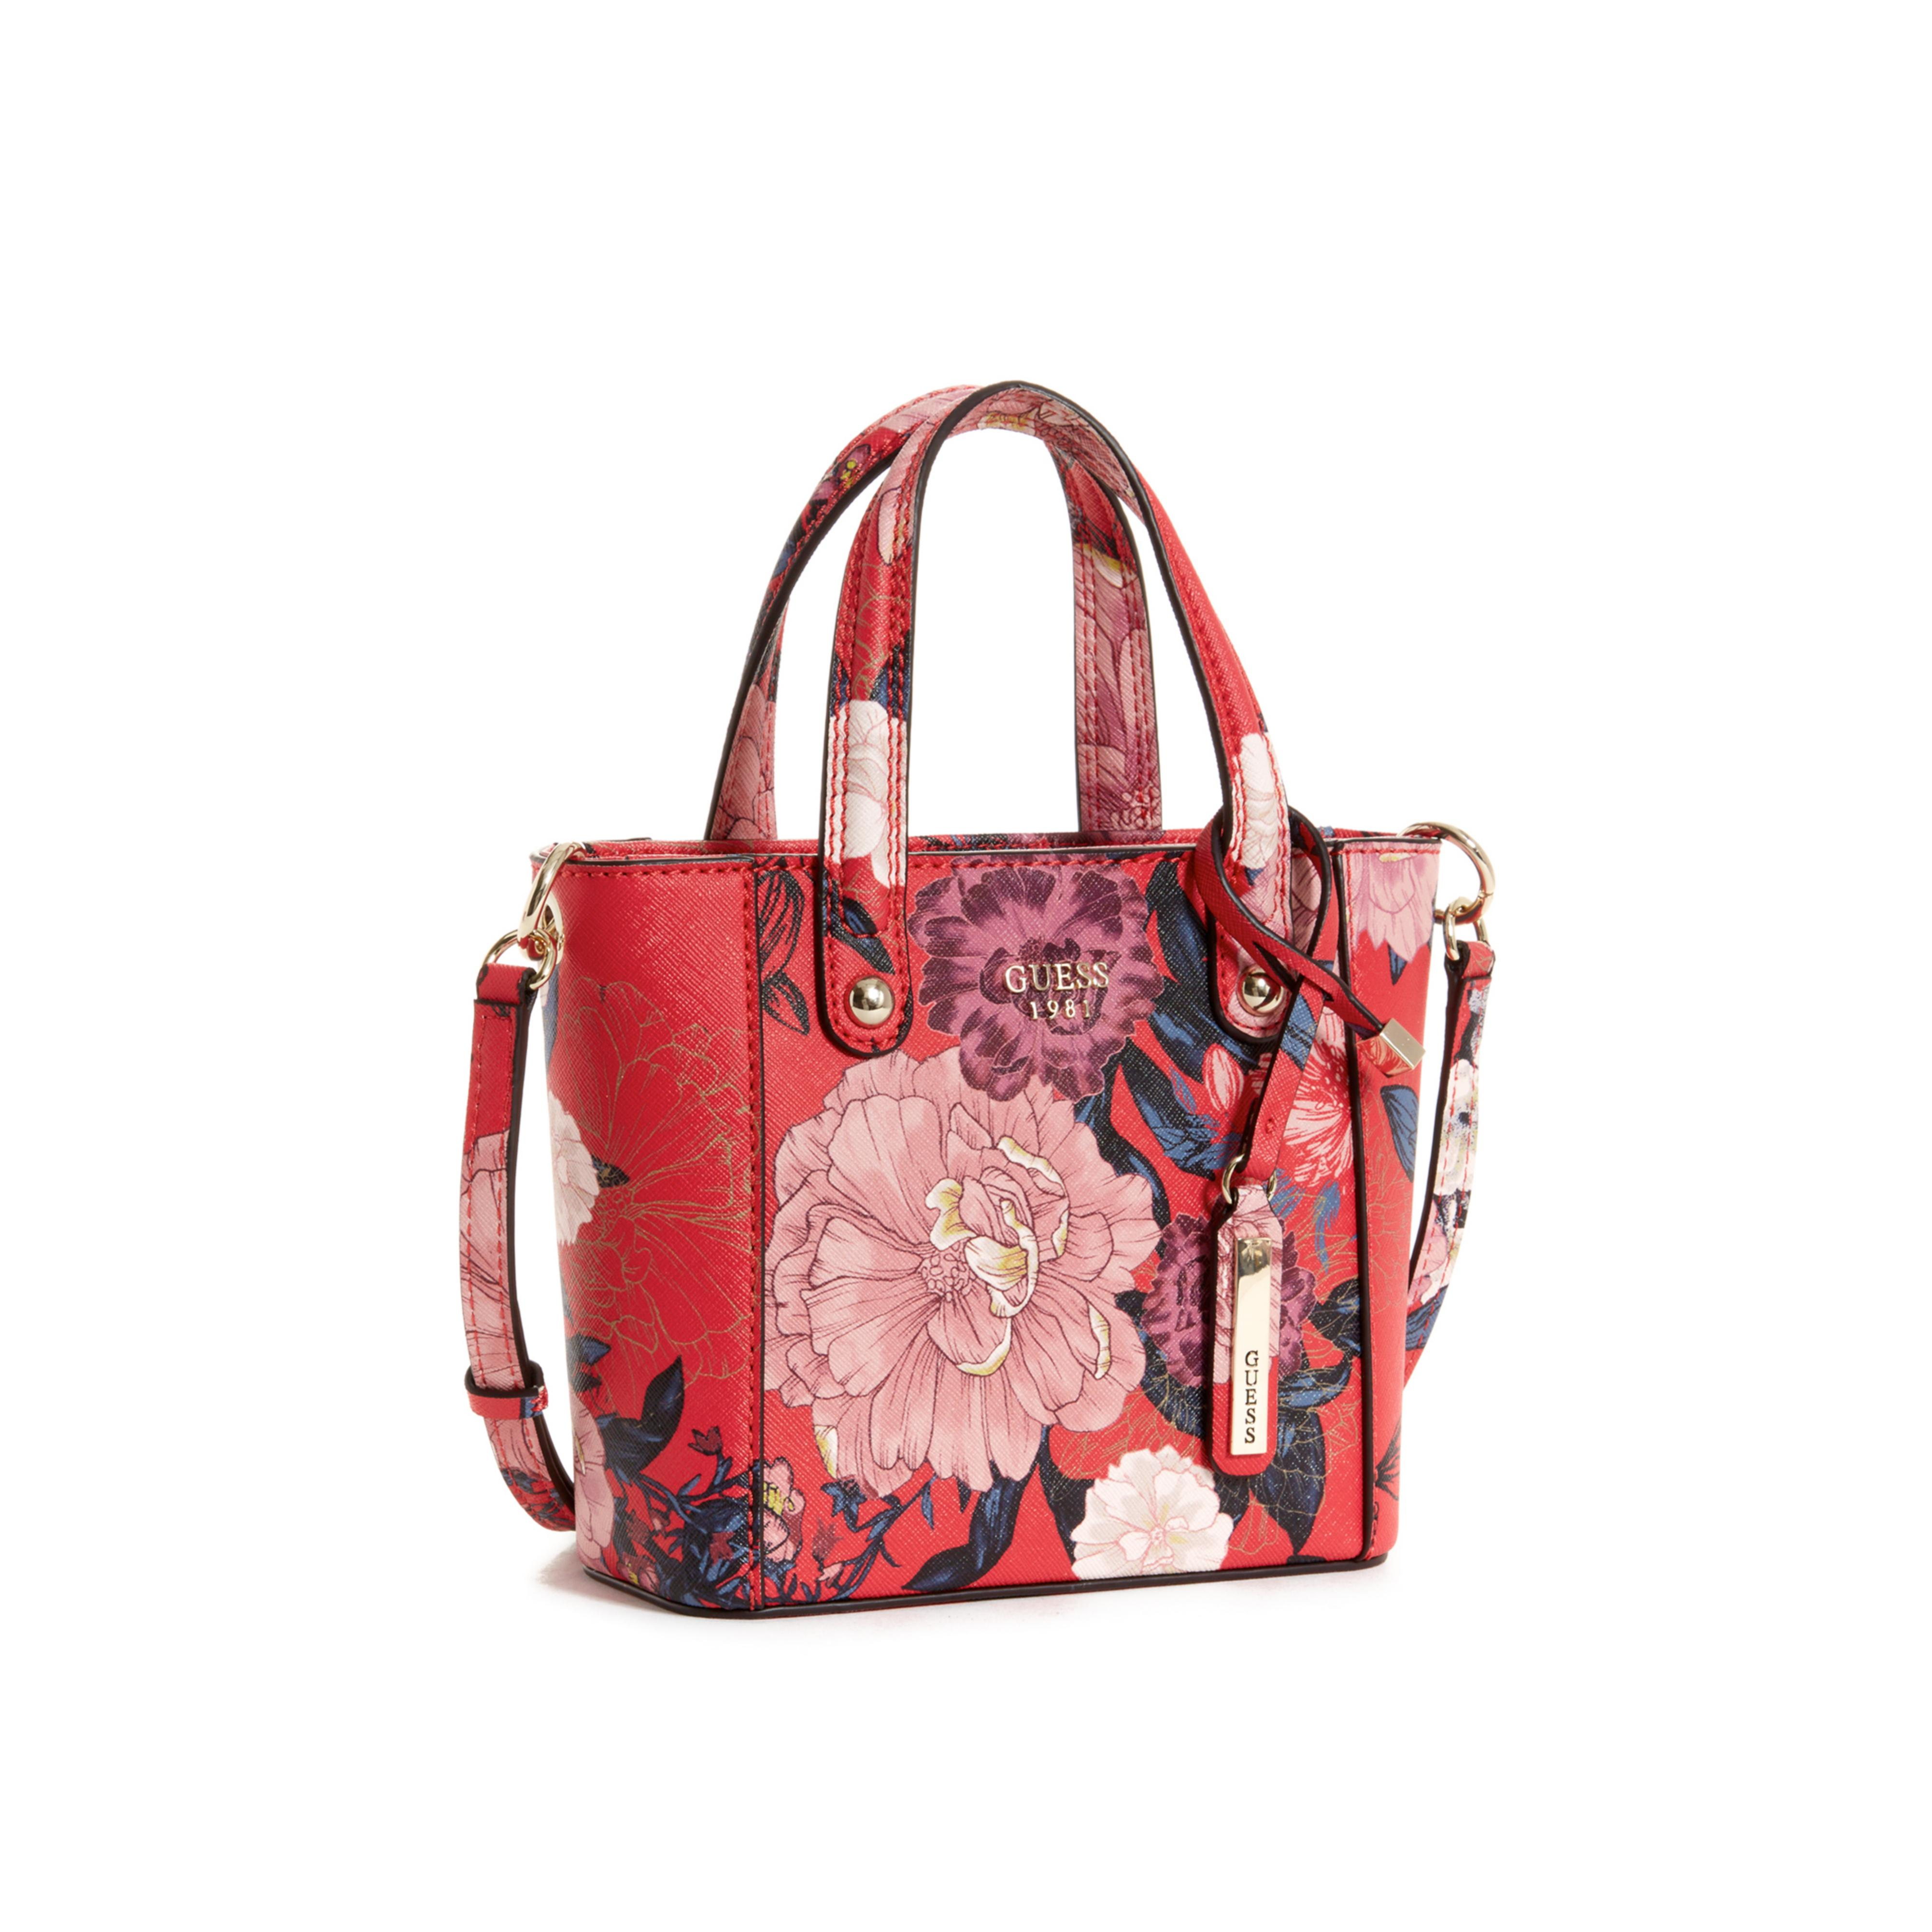 Guess Tote Bags Red - Style Guru Fashion Glitz Glamour Style Unplugged